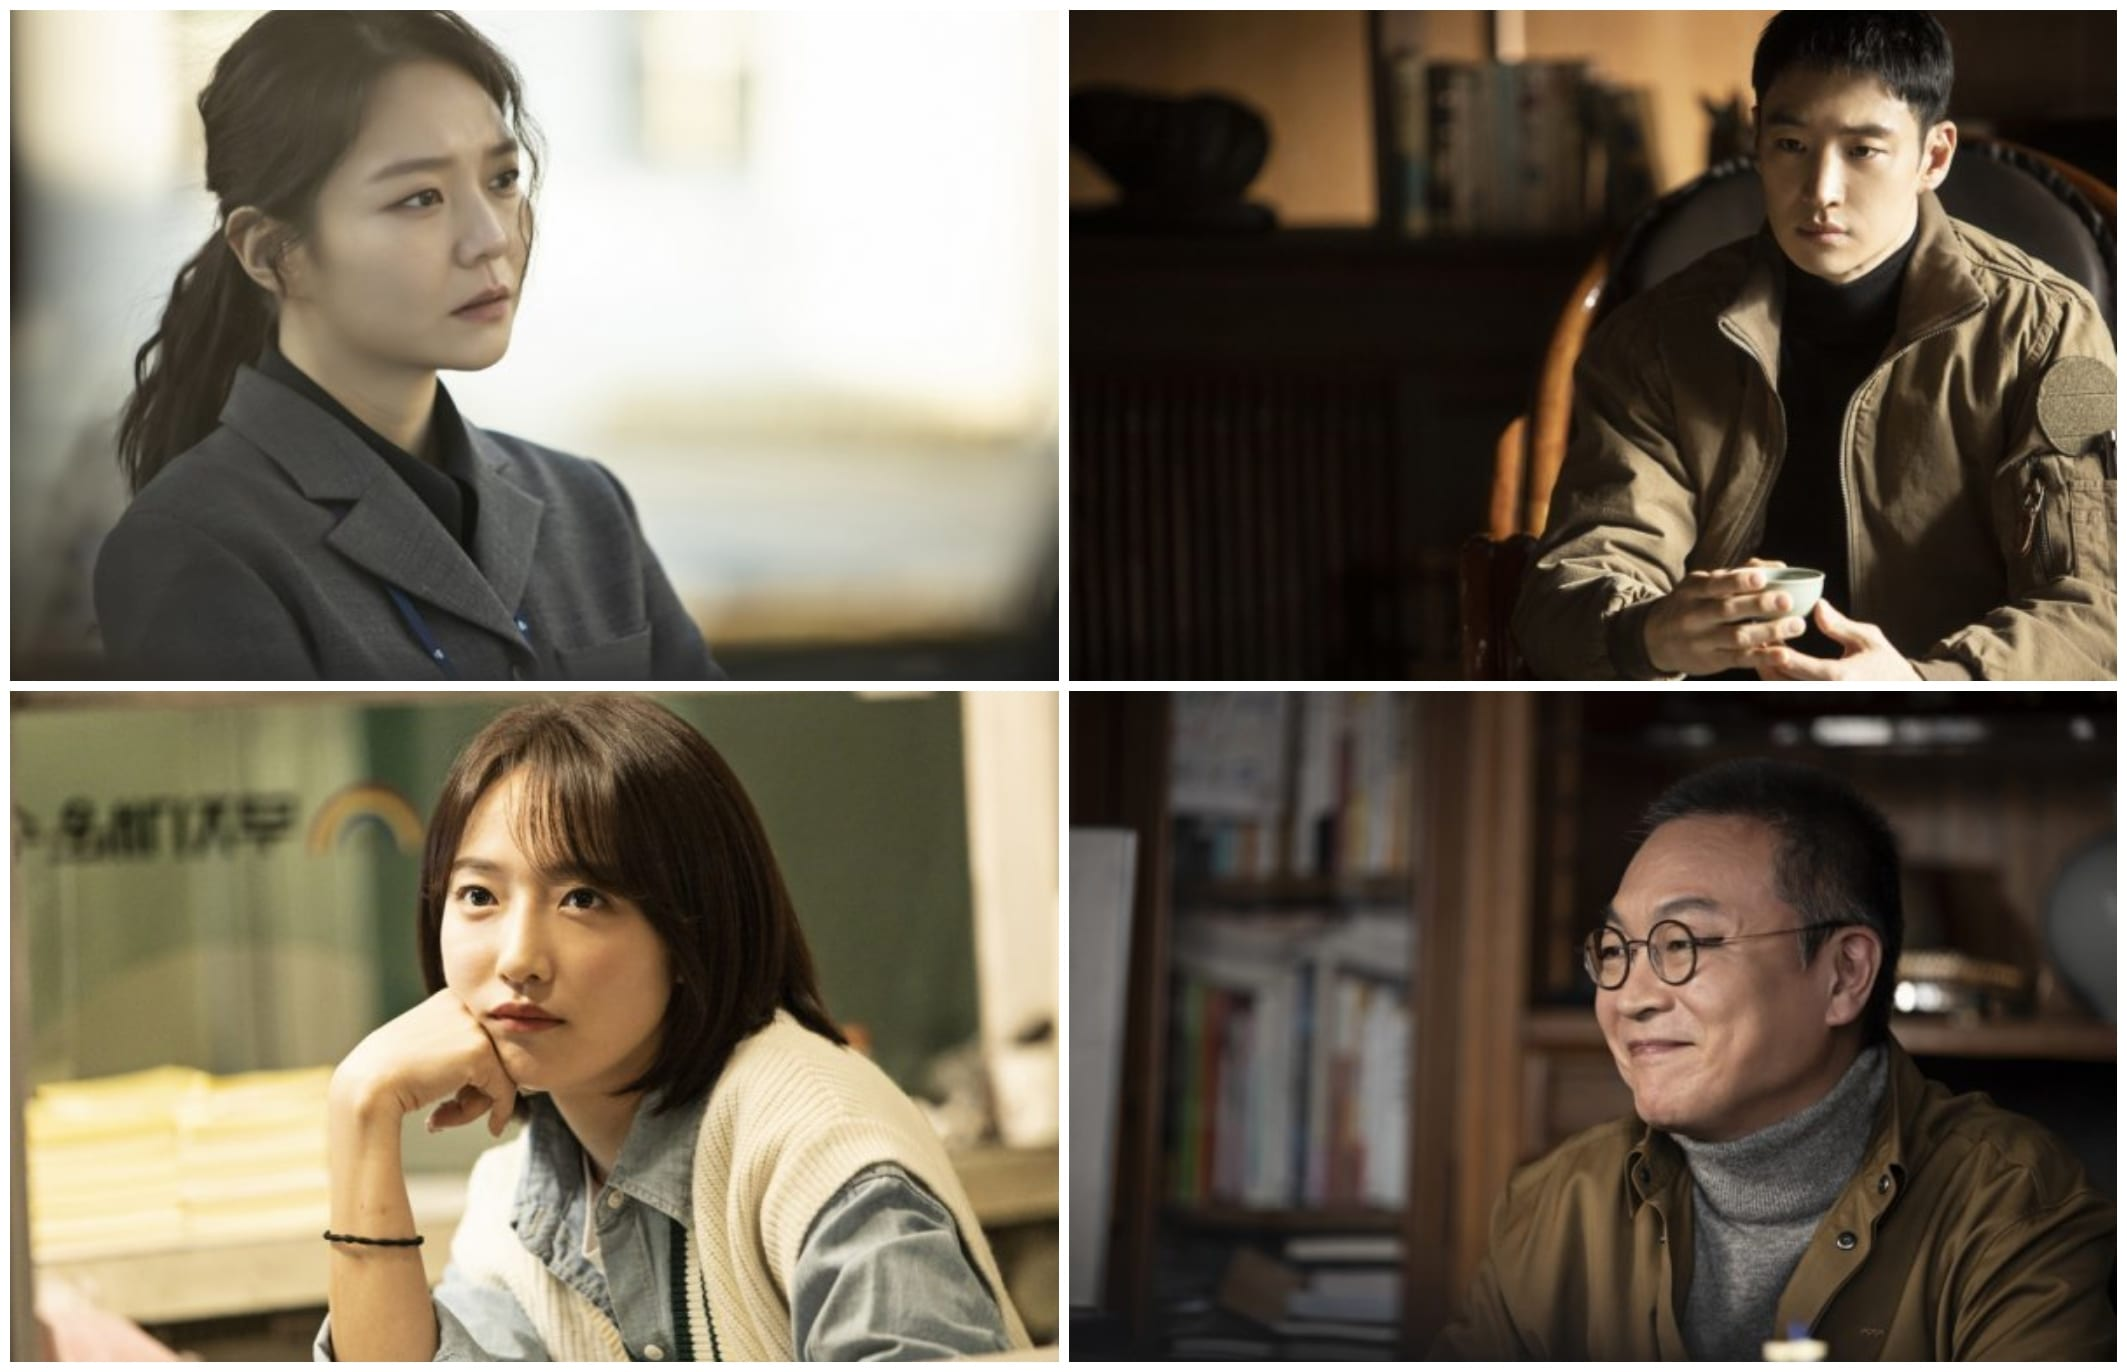 Taxi Driver episode 14 release date